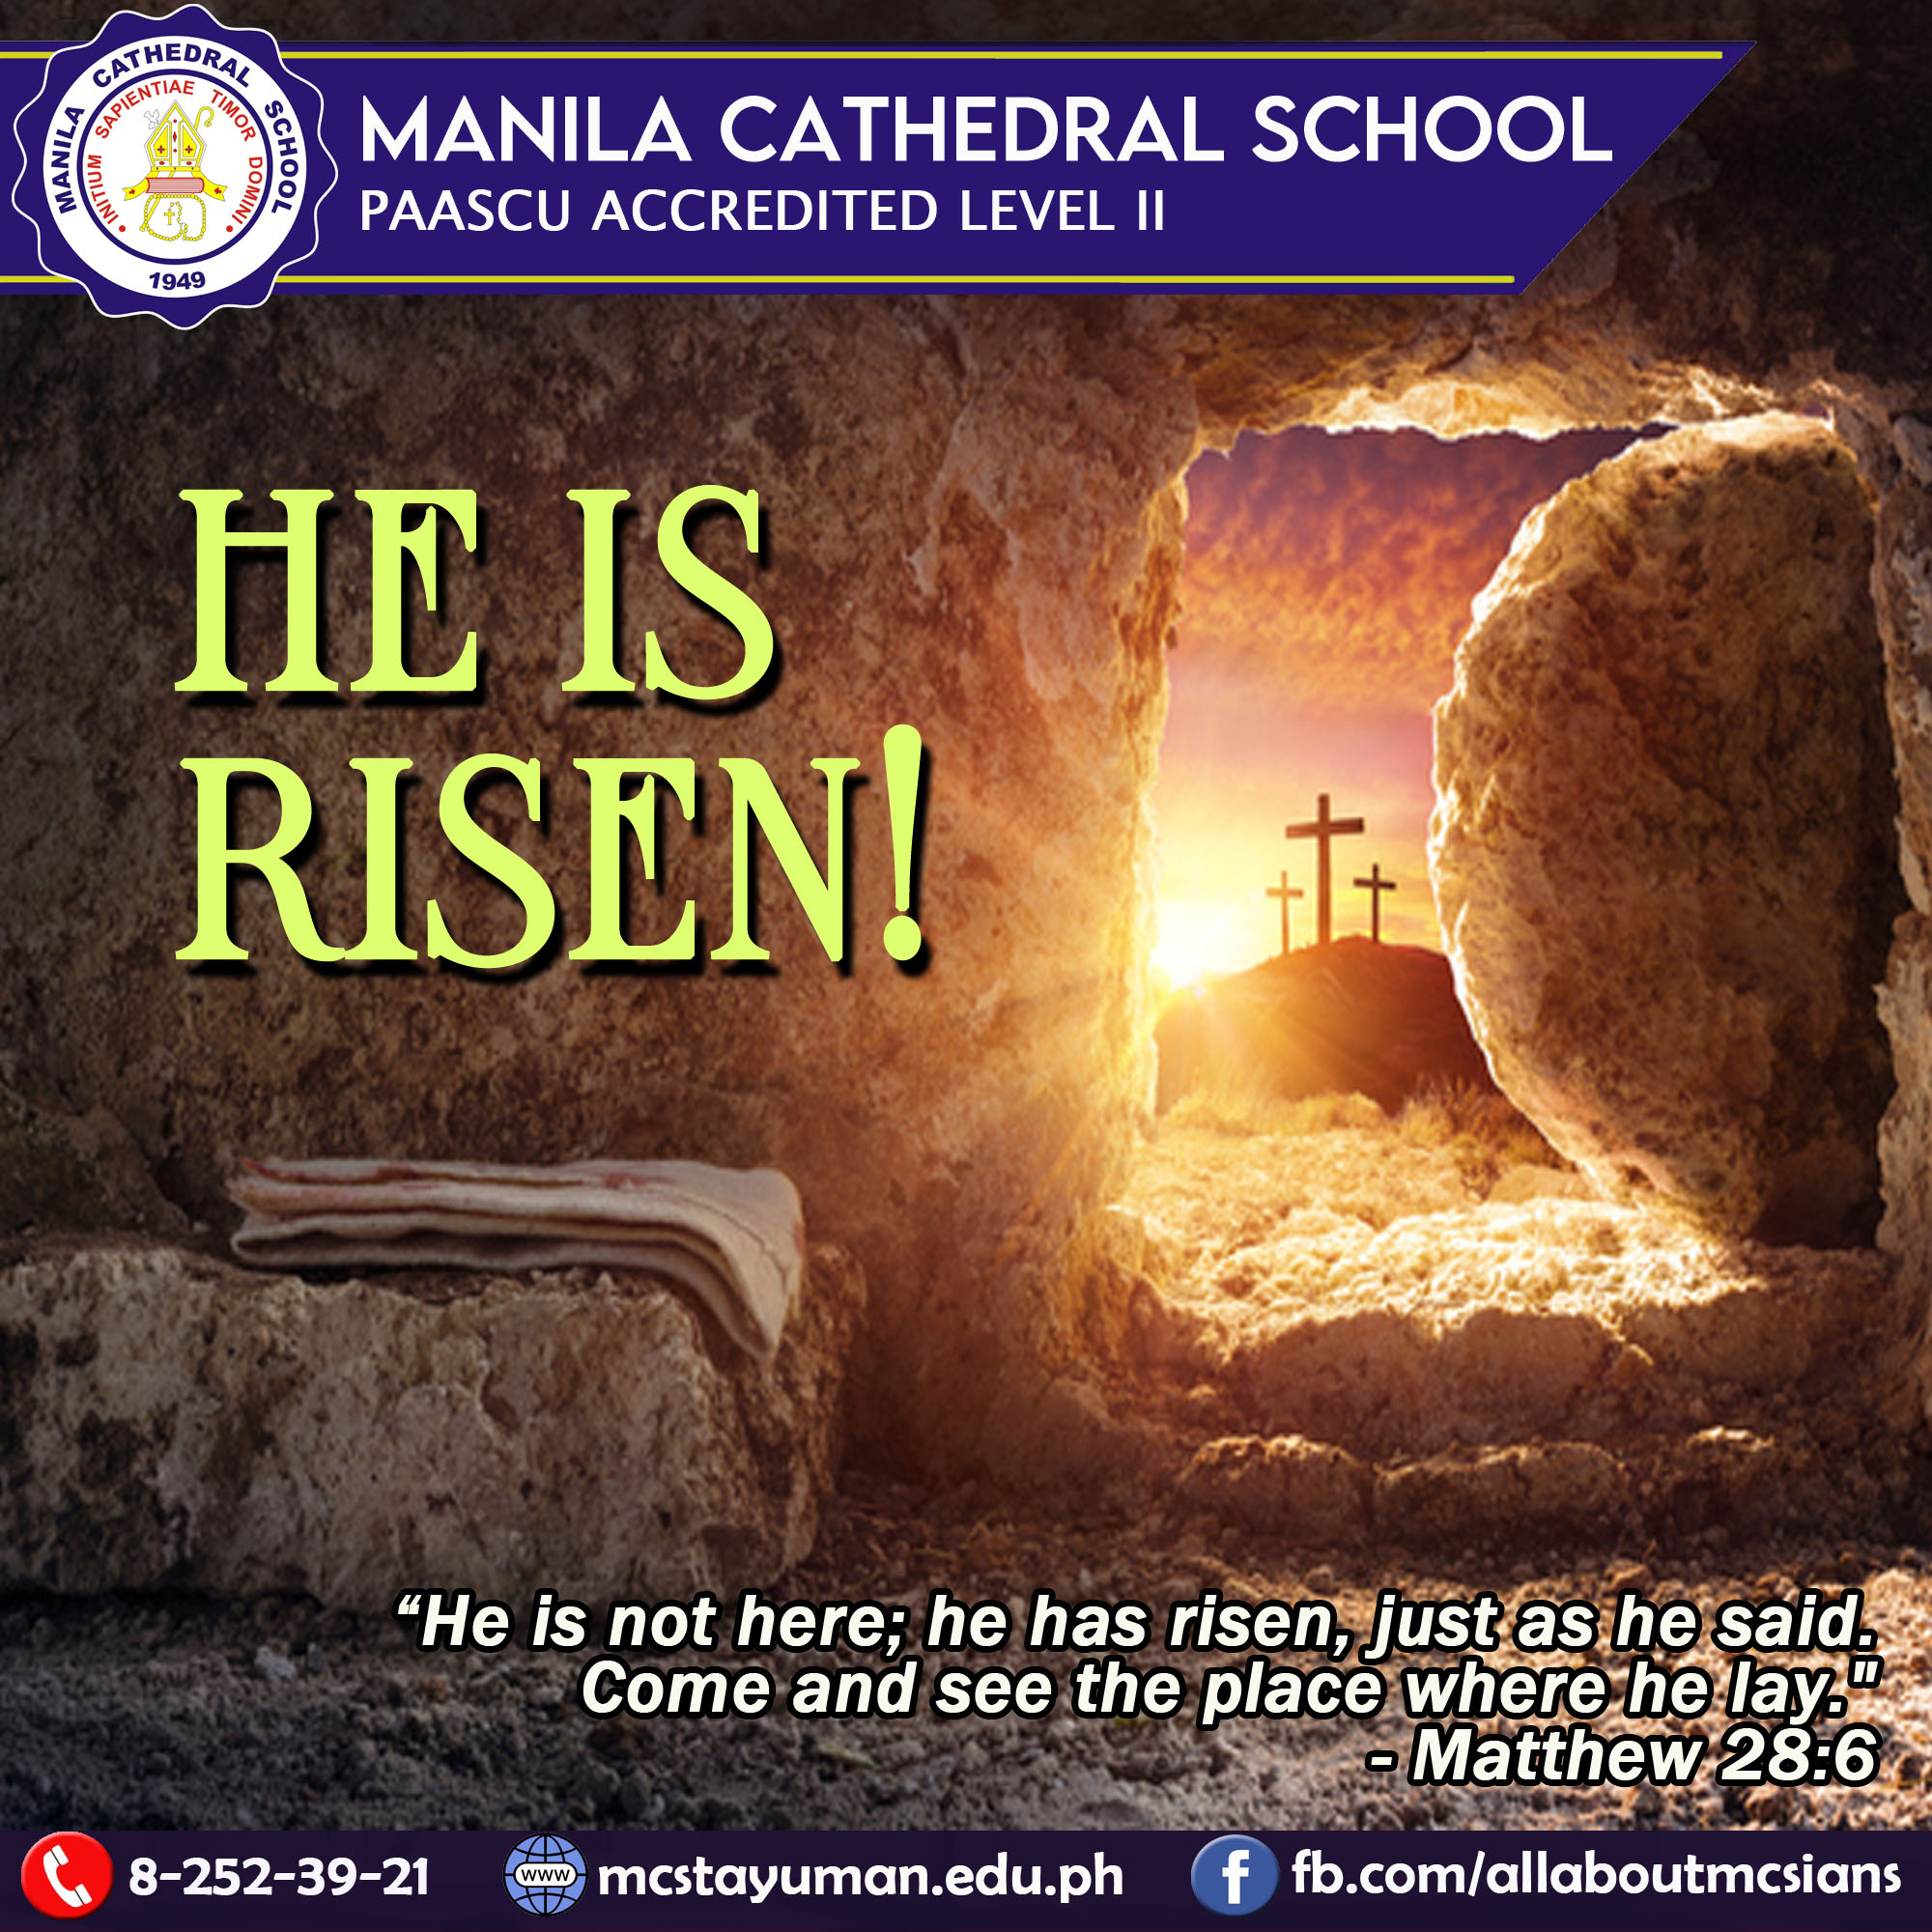 Happy Easter, MCSians! Alleluia! Christ is risen!  Rejoice in the resurrection of our Lord.